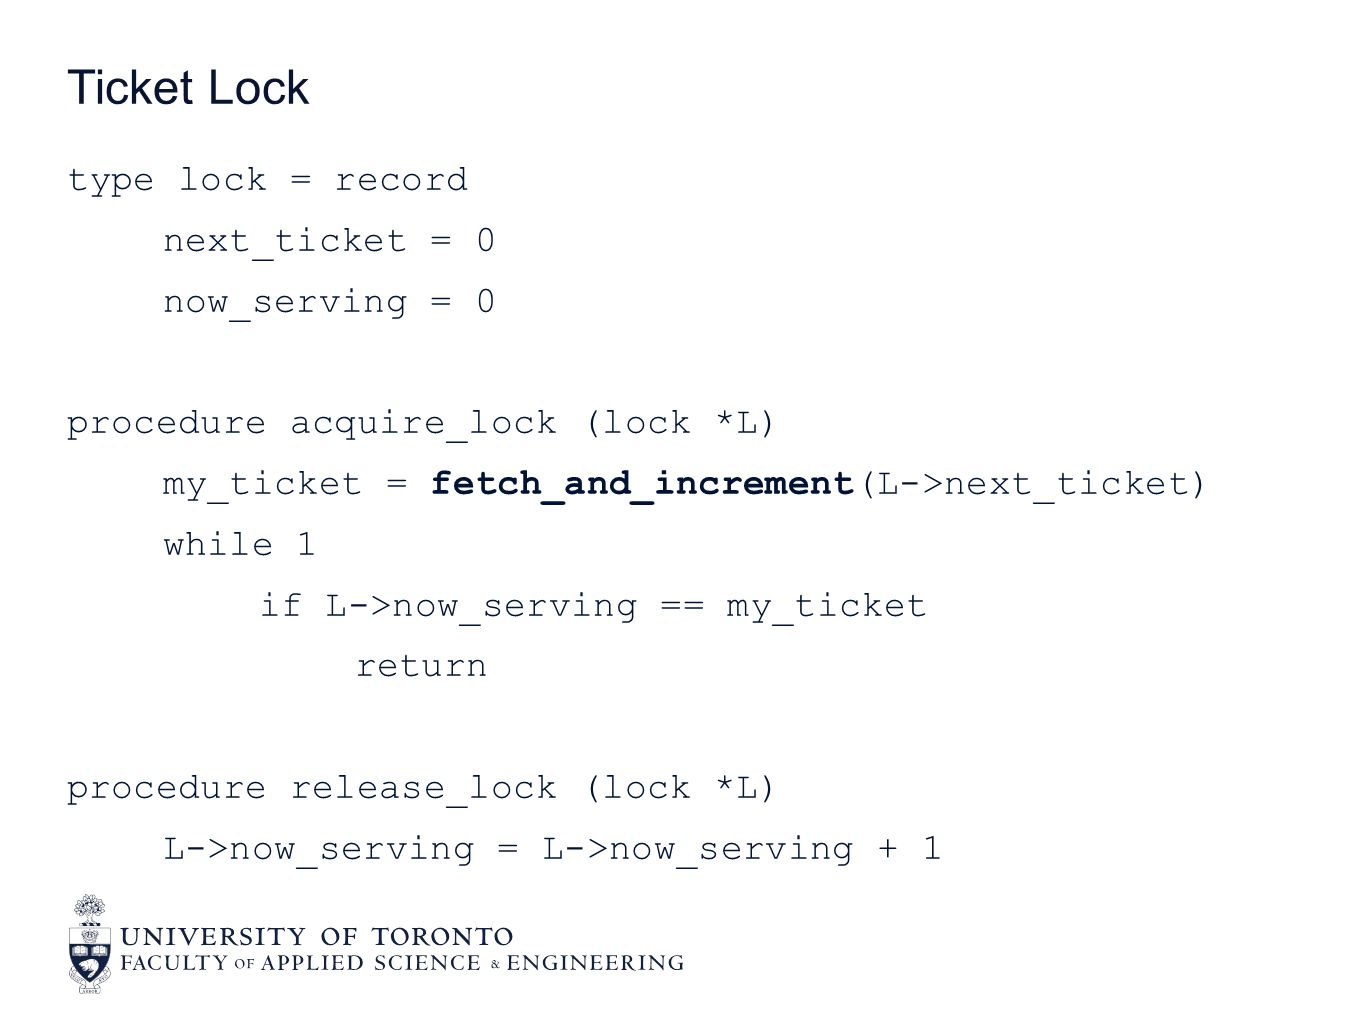 type lock = record next_ticket = 0 now_serving = 0 procedure acquire_lock (lock *L) my_ticket = fetch_and_increment(L->next_ticket) while 1 if L->now_